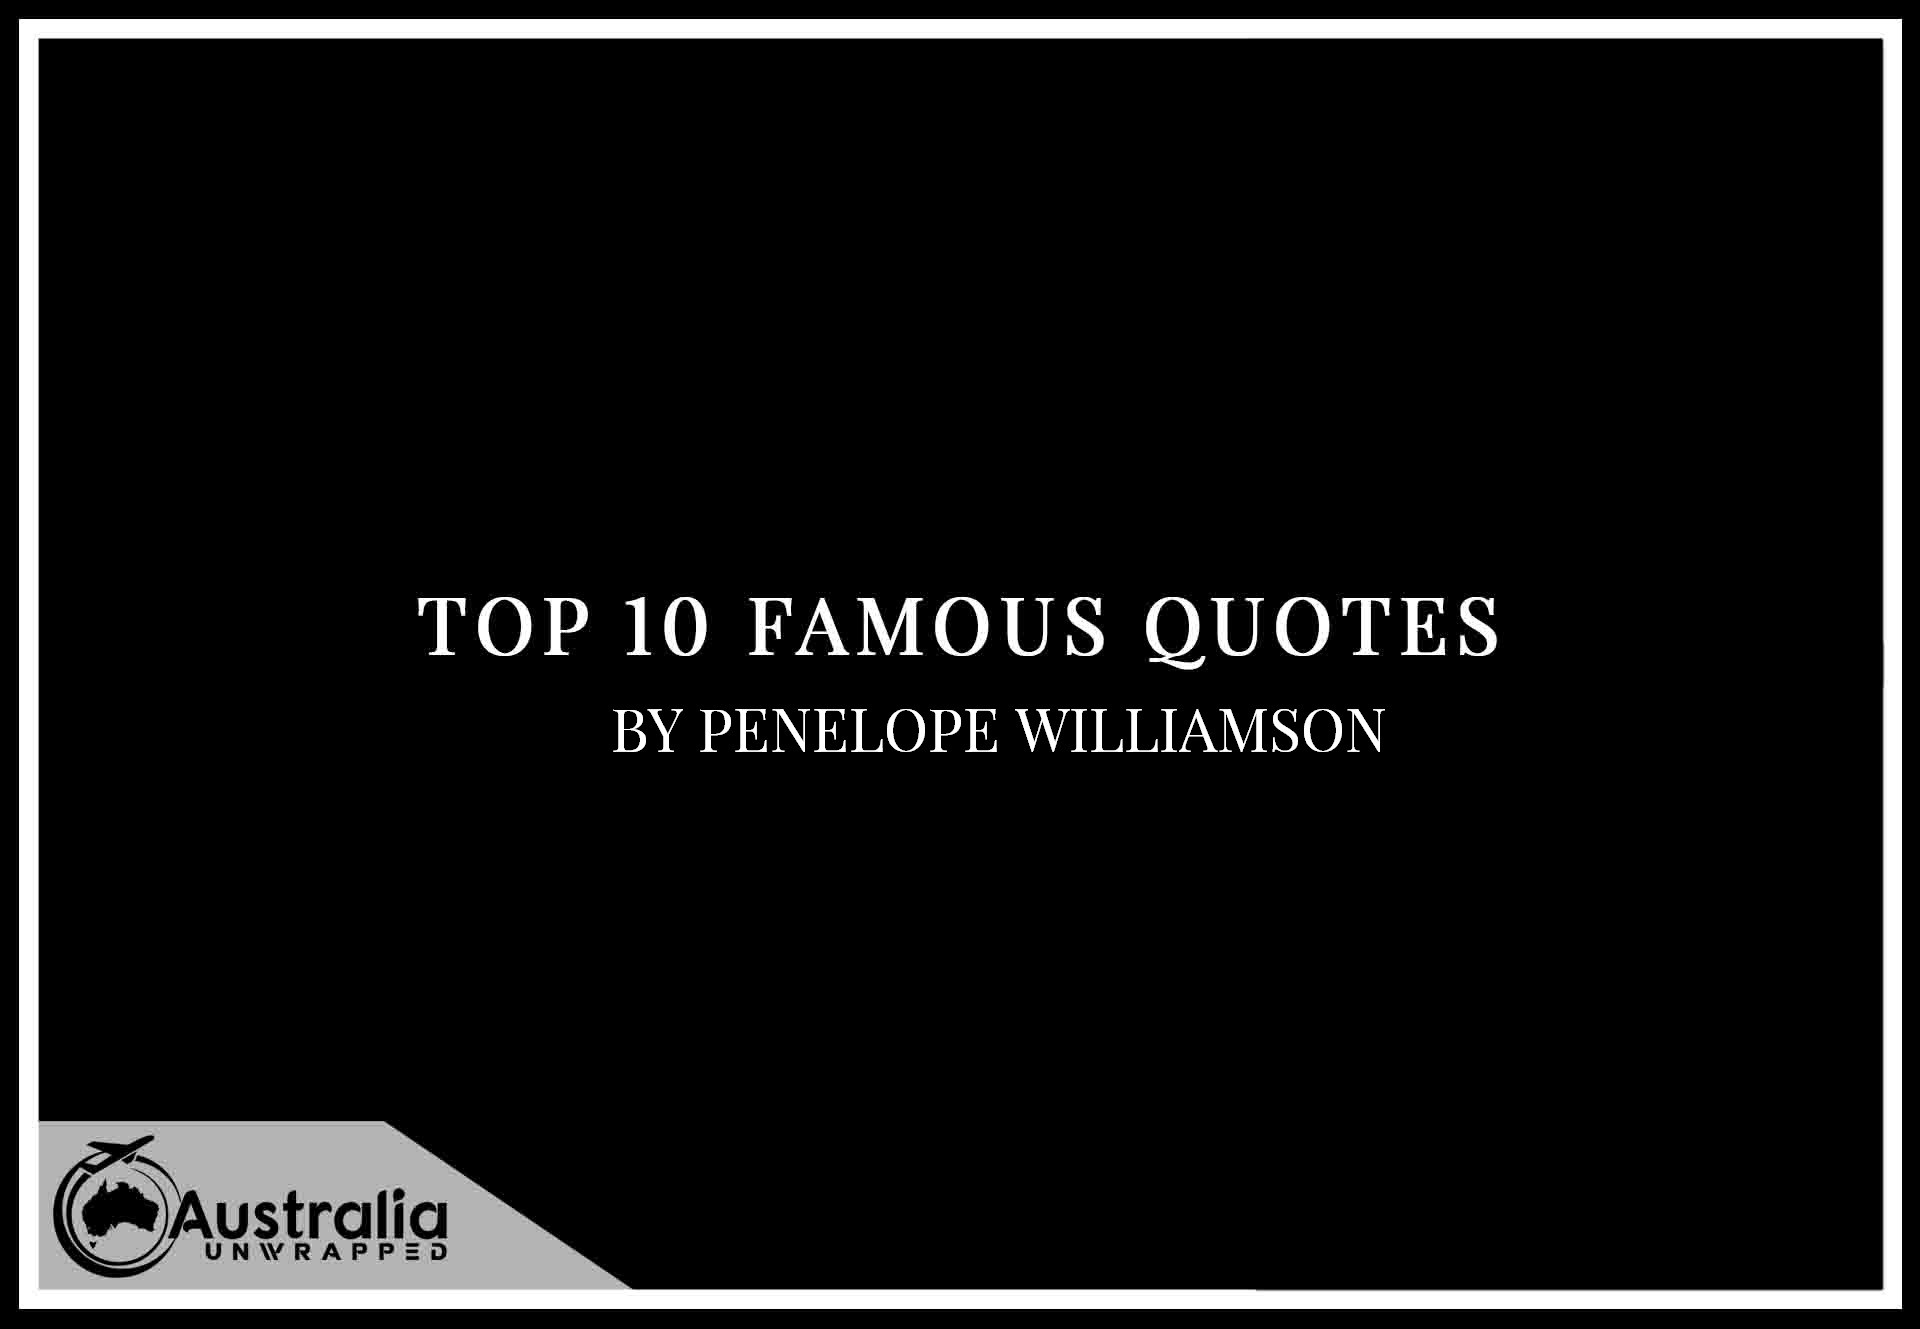 Top 10 Famous Quotes by Author Penelope Williamson